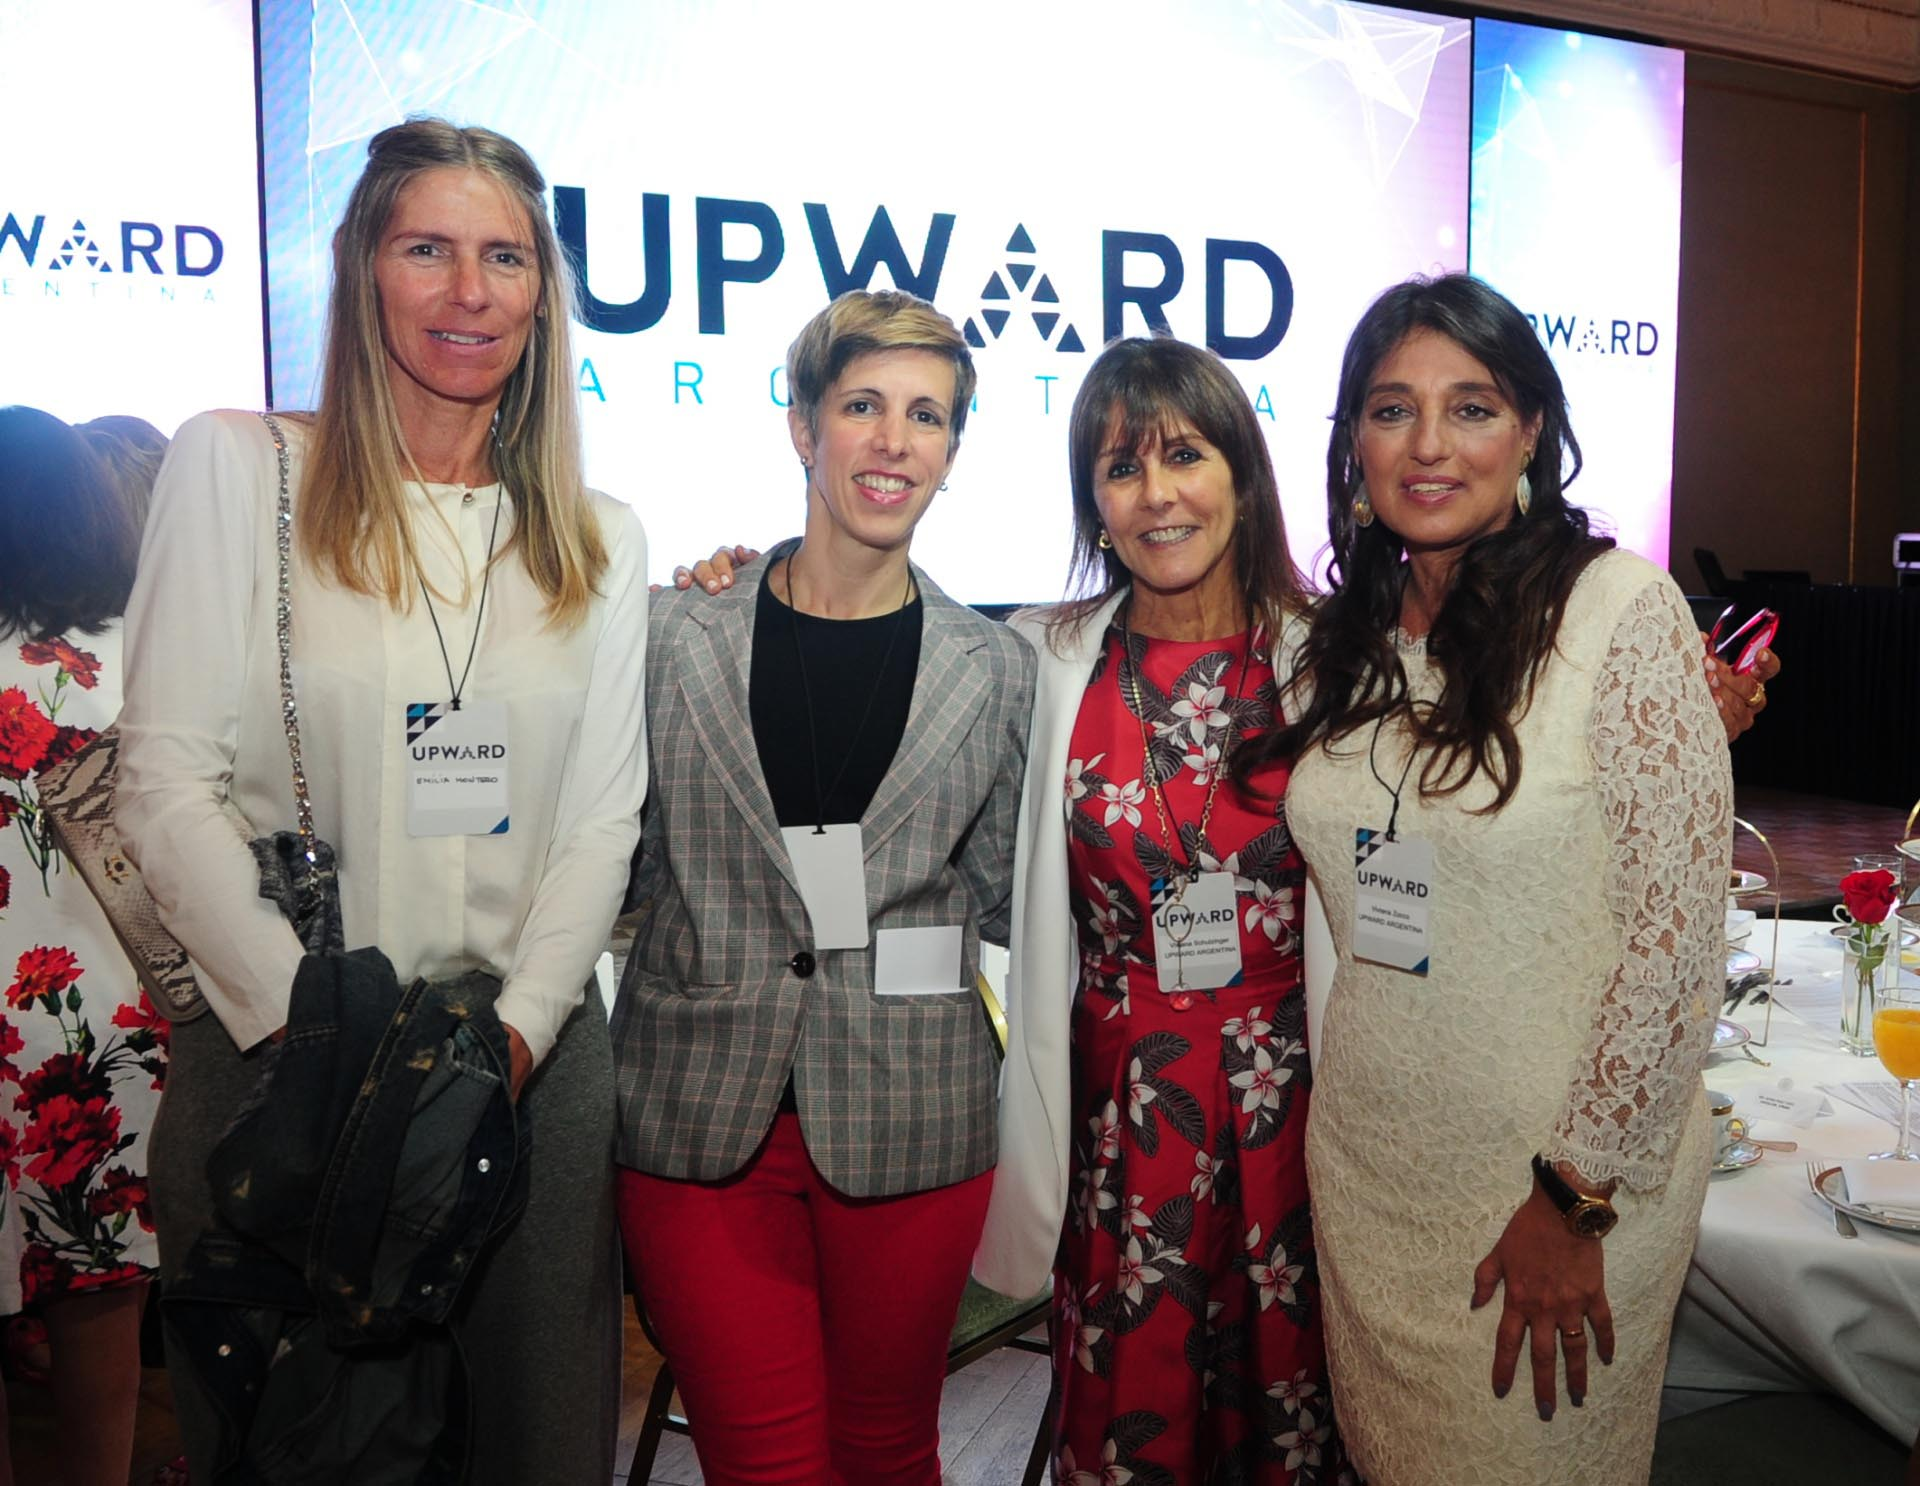 Emilia Montero (Directora Great Place to Work), Natalia Kaposvari (Marketing y desarrollo comercial de Great Place to Work), Viviana Schulzinger (Directora Ejecutiva UPWARD Argentina) y Viviana Zocco (UPWARD Argentina)